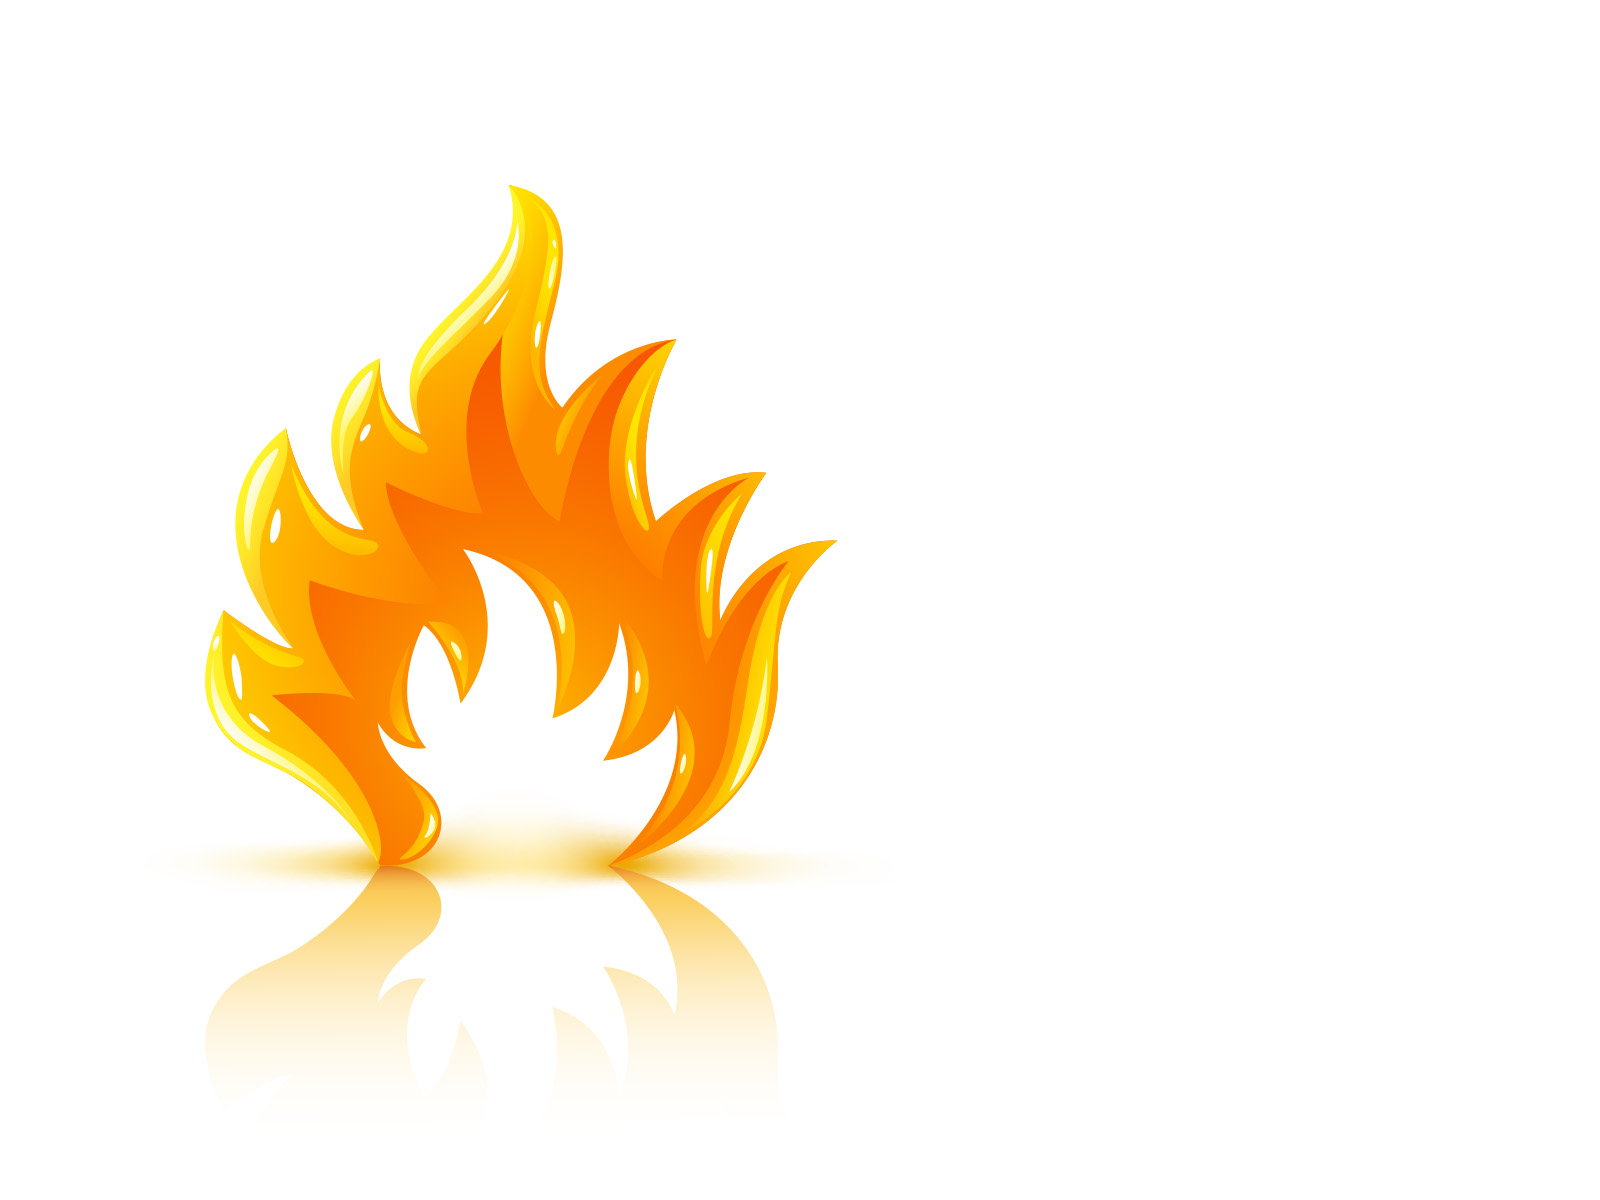 Glossy Burning Fire Flame Backgrounds